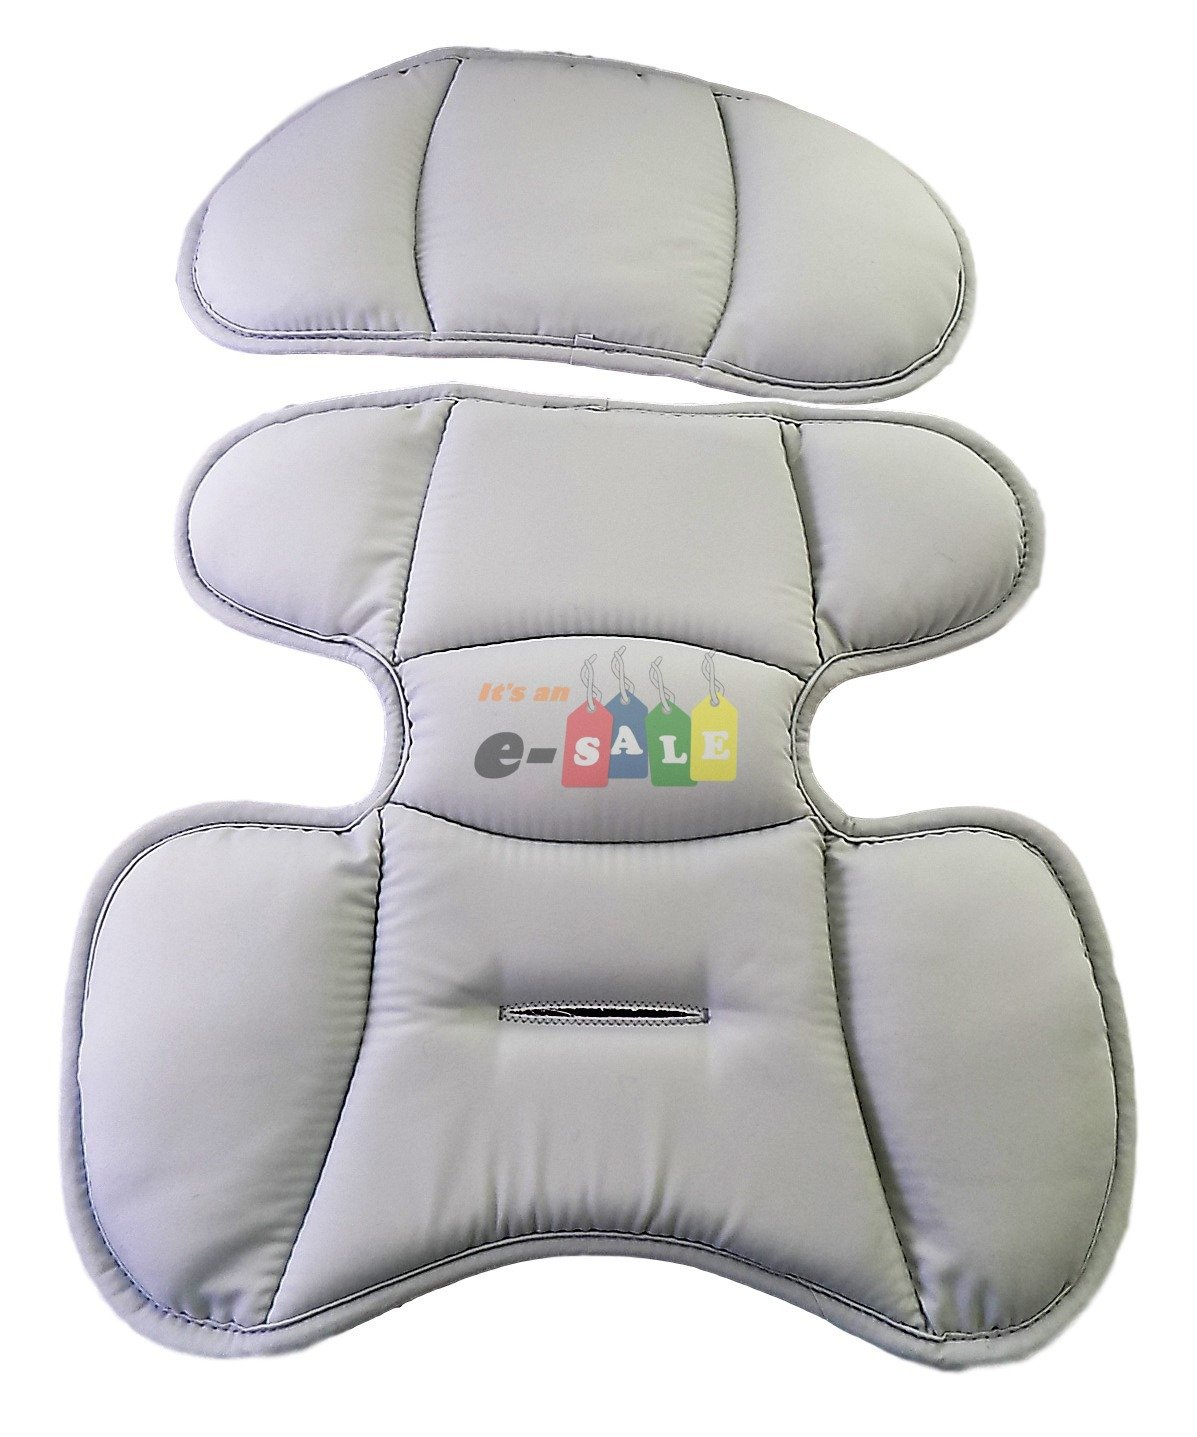 Replacement Infant Head and Body Insert Pads for Chicco KeyFit & KeyFit 30 Car Seat - Granita